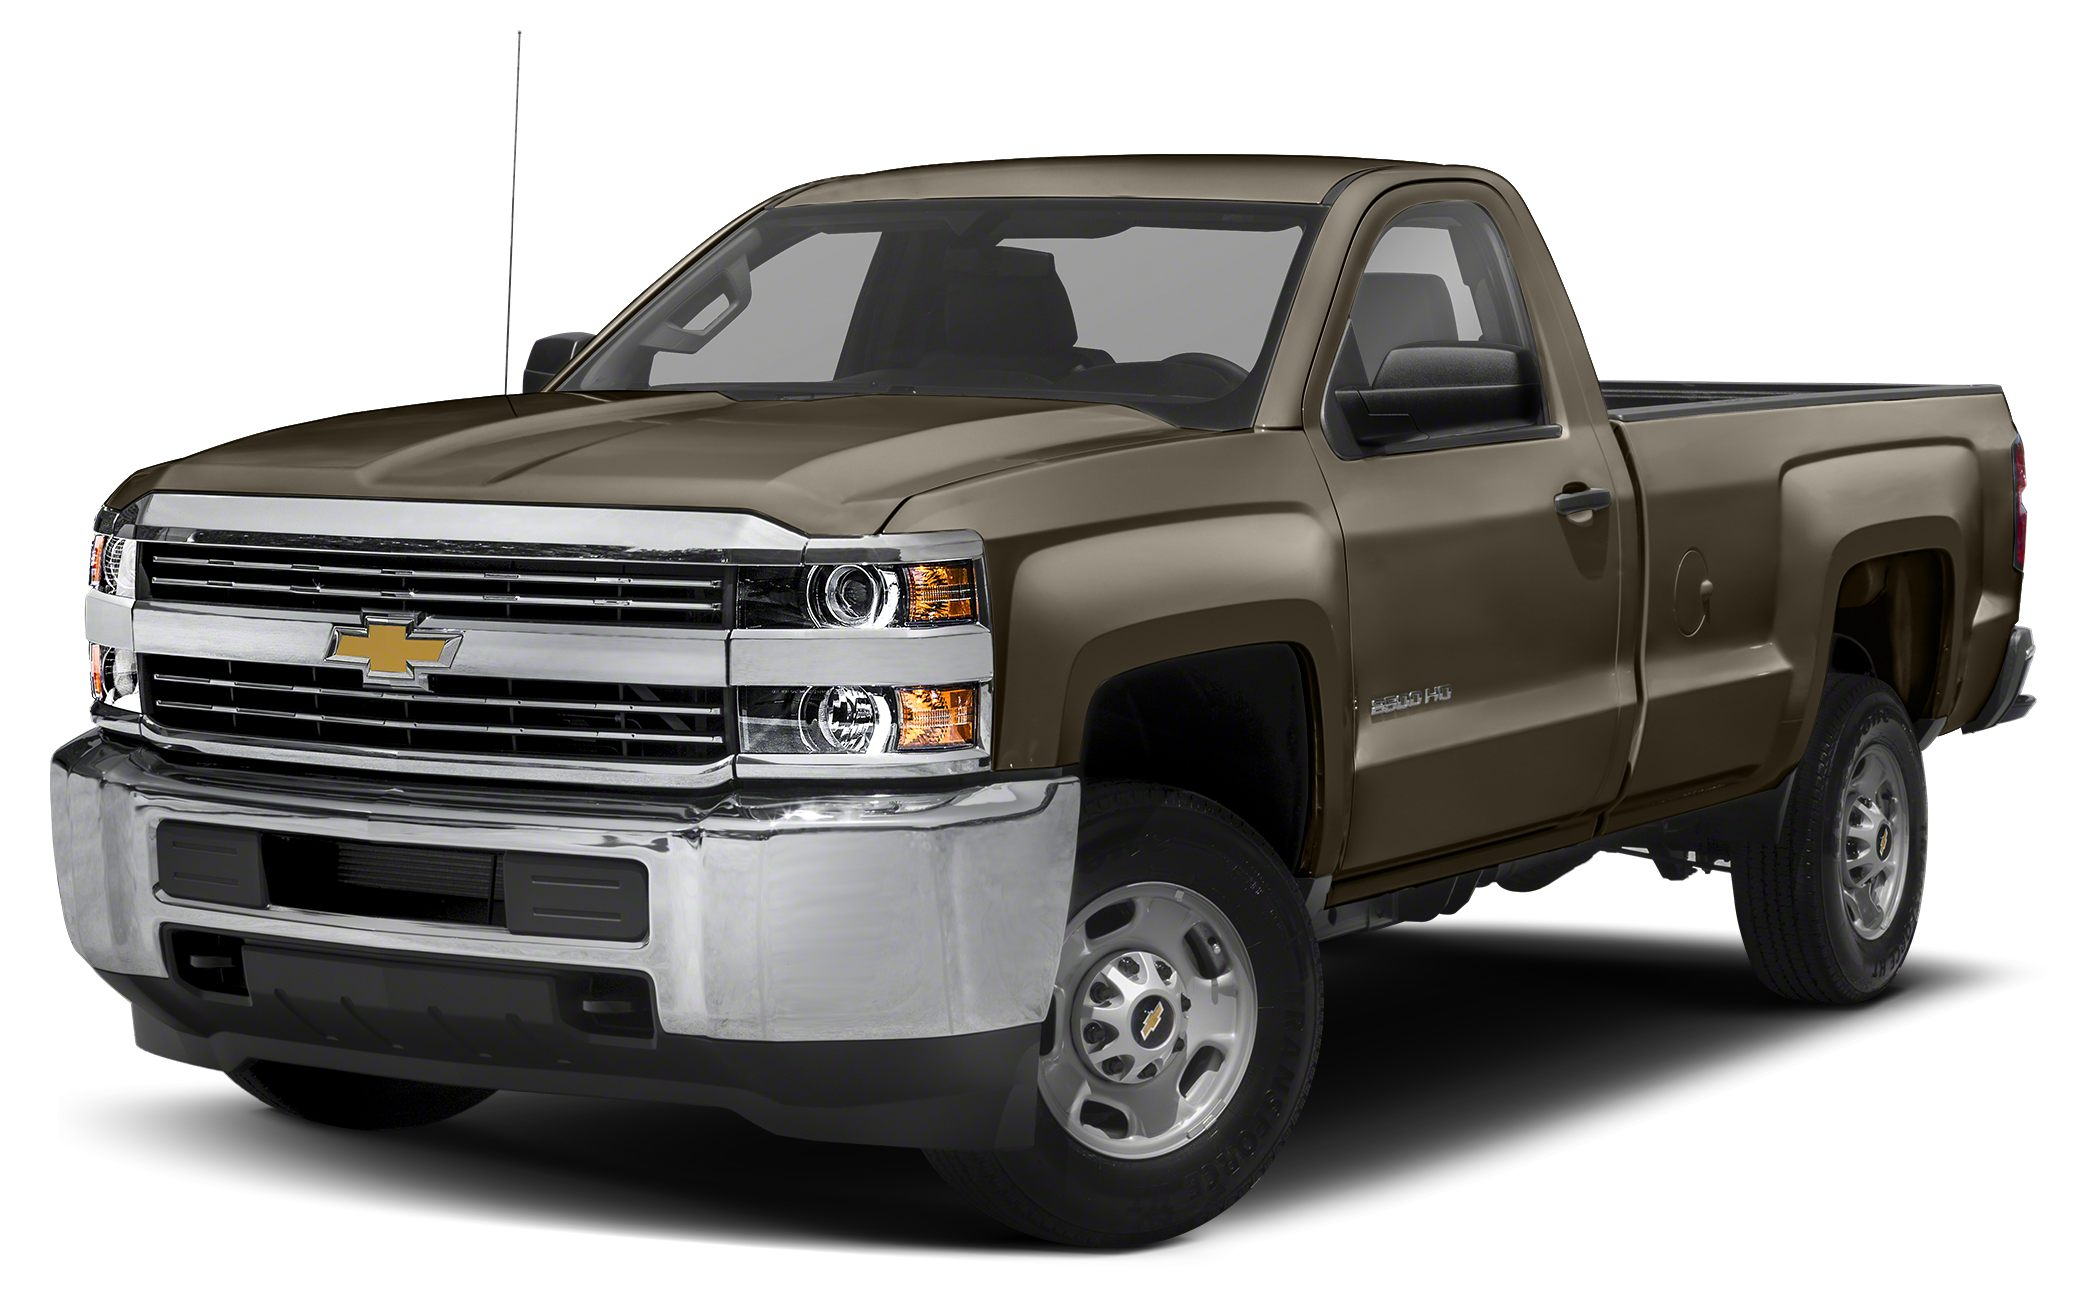 ram 2500 st vs chevrolet silverado 2500hd wt vs ford f 250. Black Bedroom Furniture Sets. Home Design Ideas